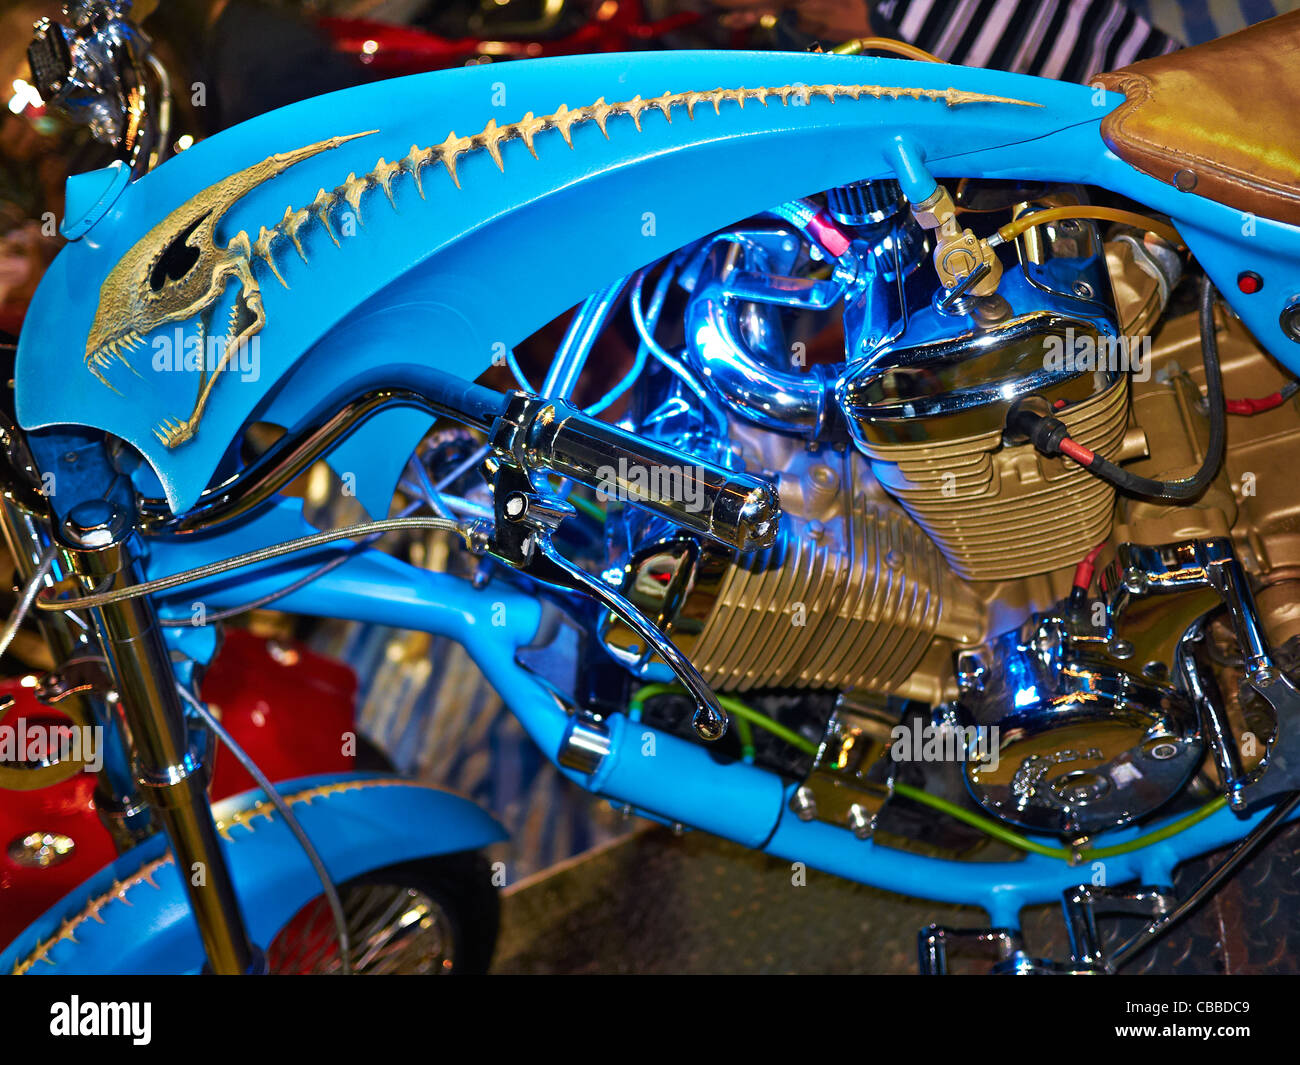 Colorful and unusual fuel tank detail of a highly customized, award winning, Honda chopper motorcycle. - Stock Image